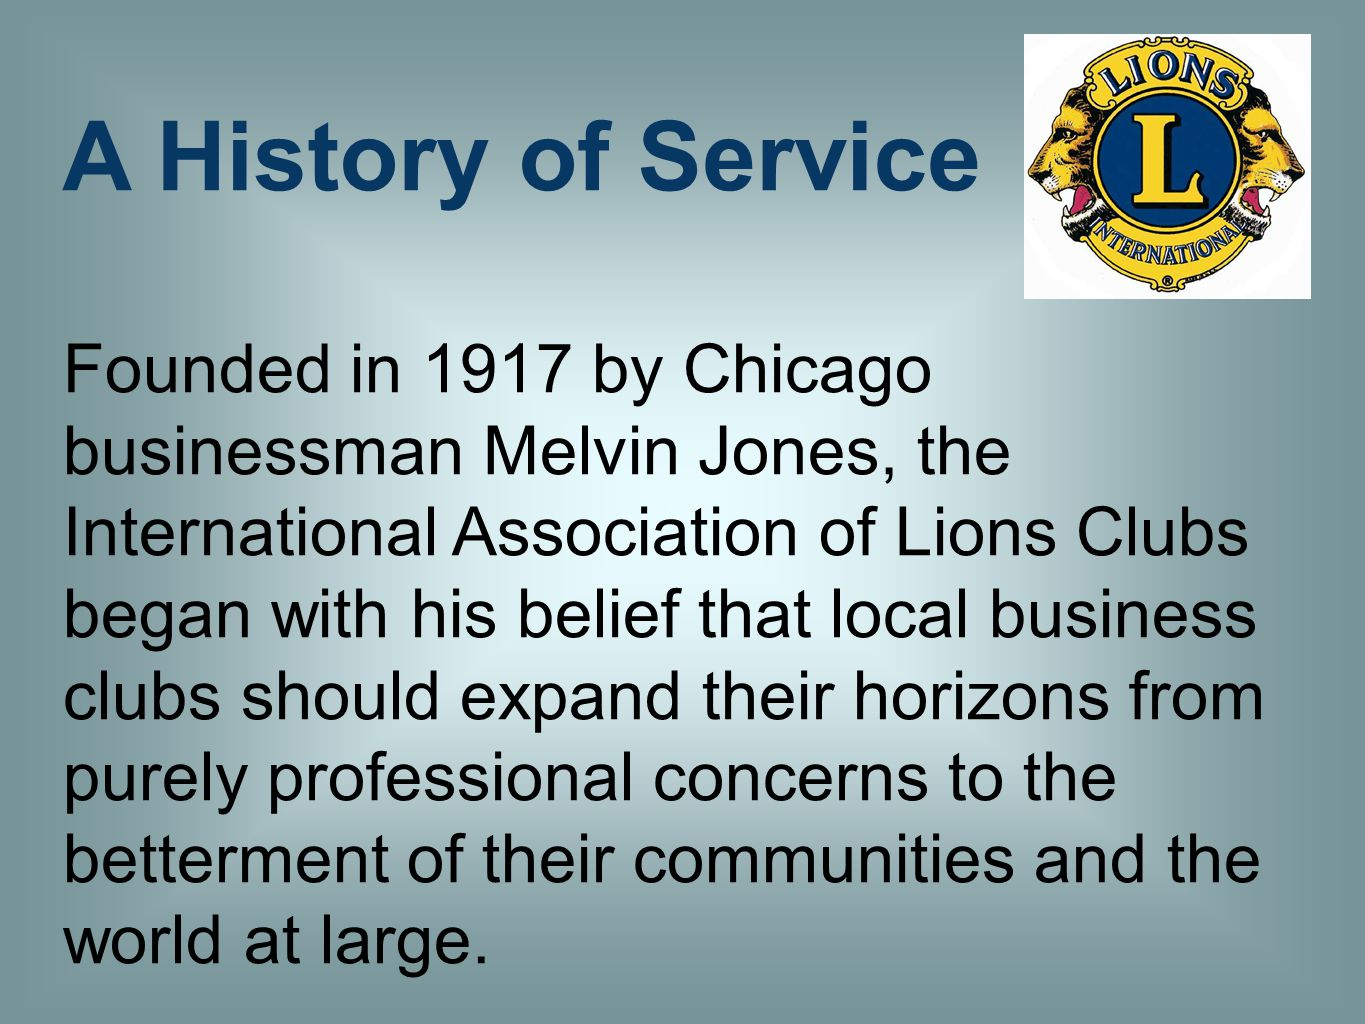 A History of Service Founded in 1917 by Chicago businessman Melvin Jones, the International Association of Lions Clubs began with his belief that local business clubs should expand their horizons from purely professional concerns to the betterment of their communities and the world at large.